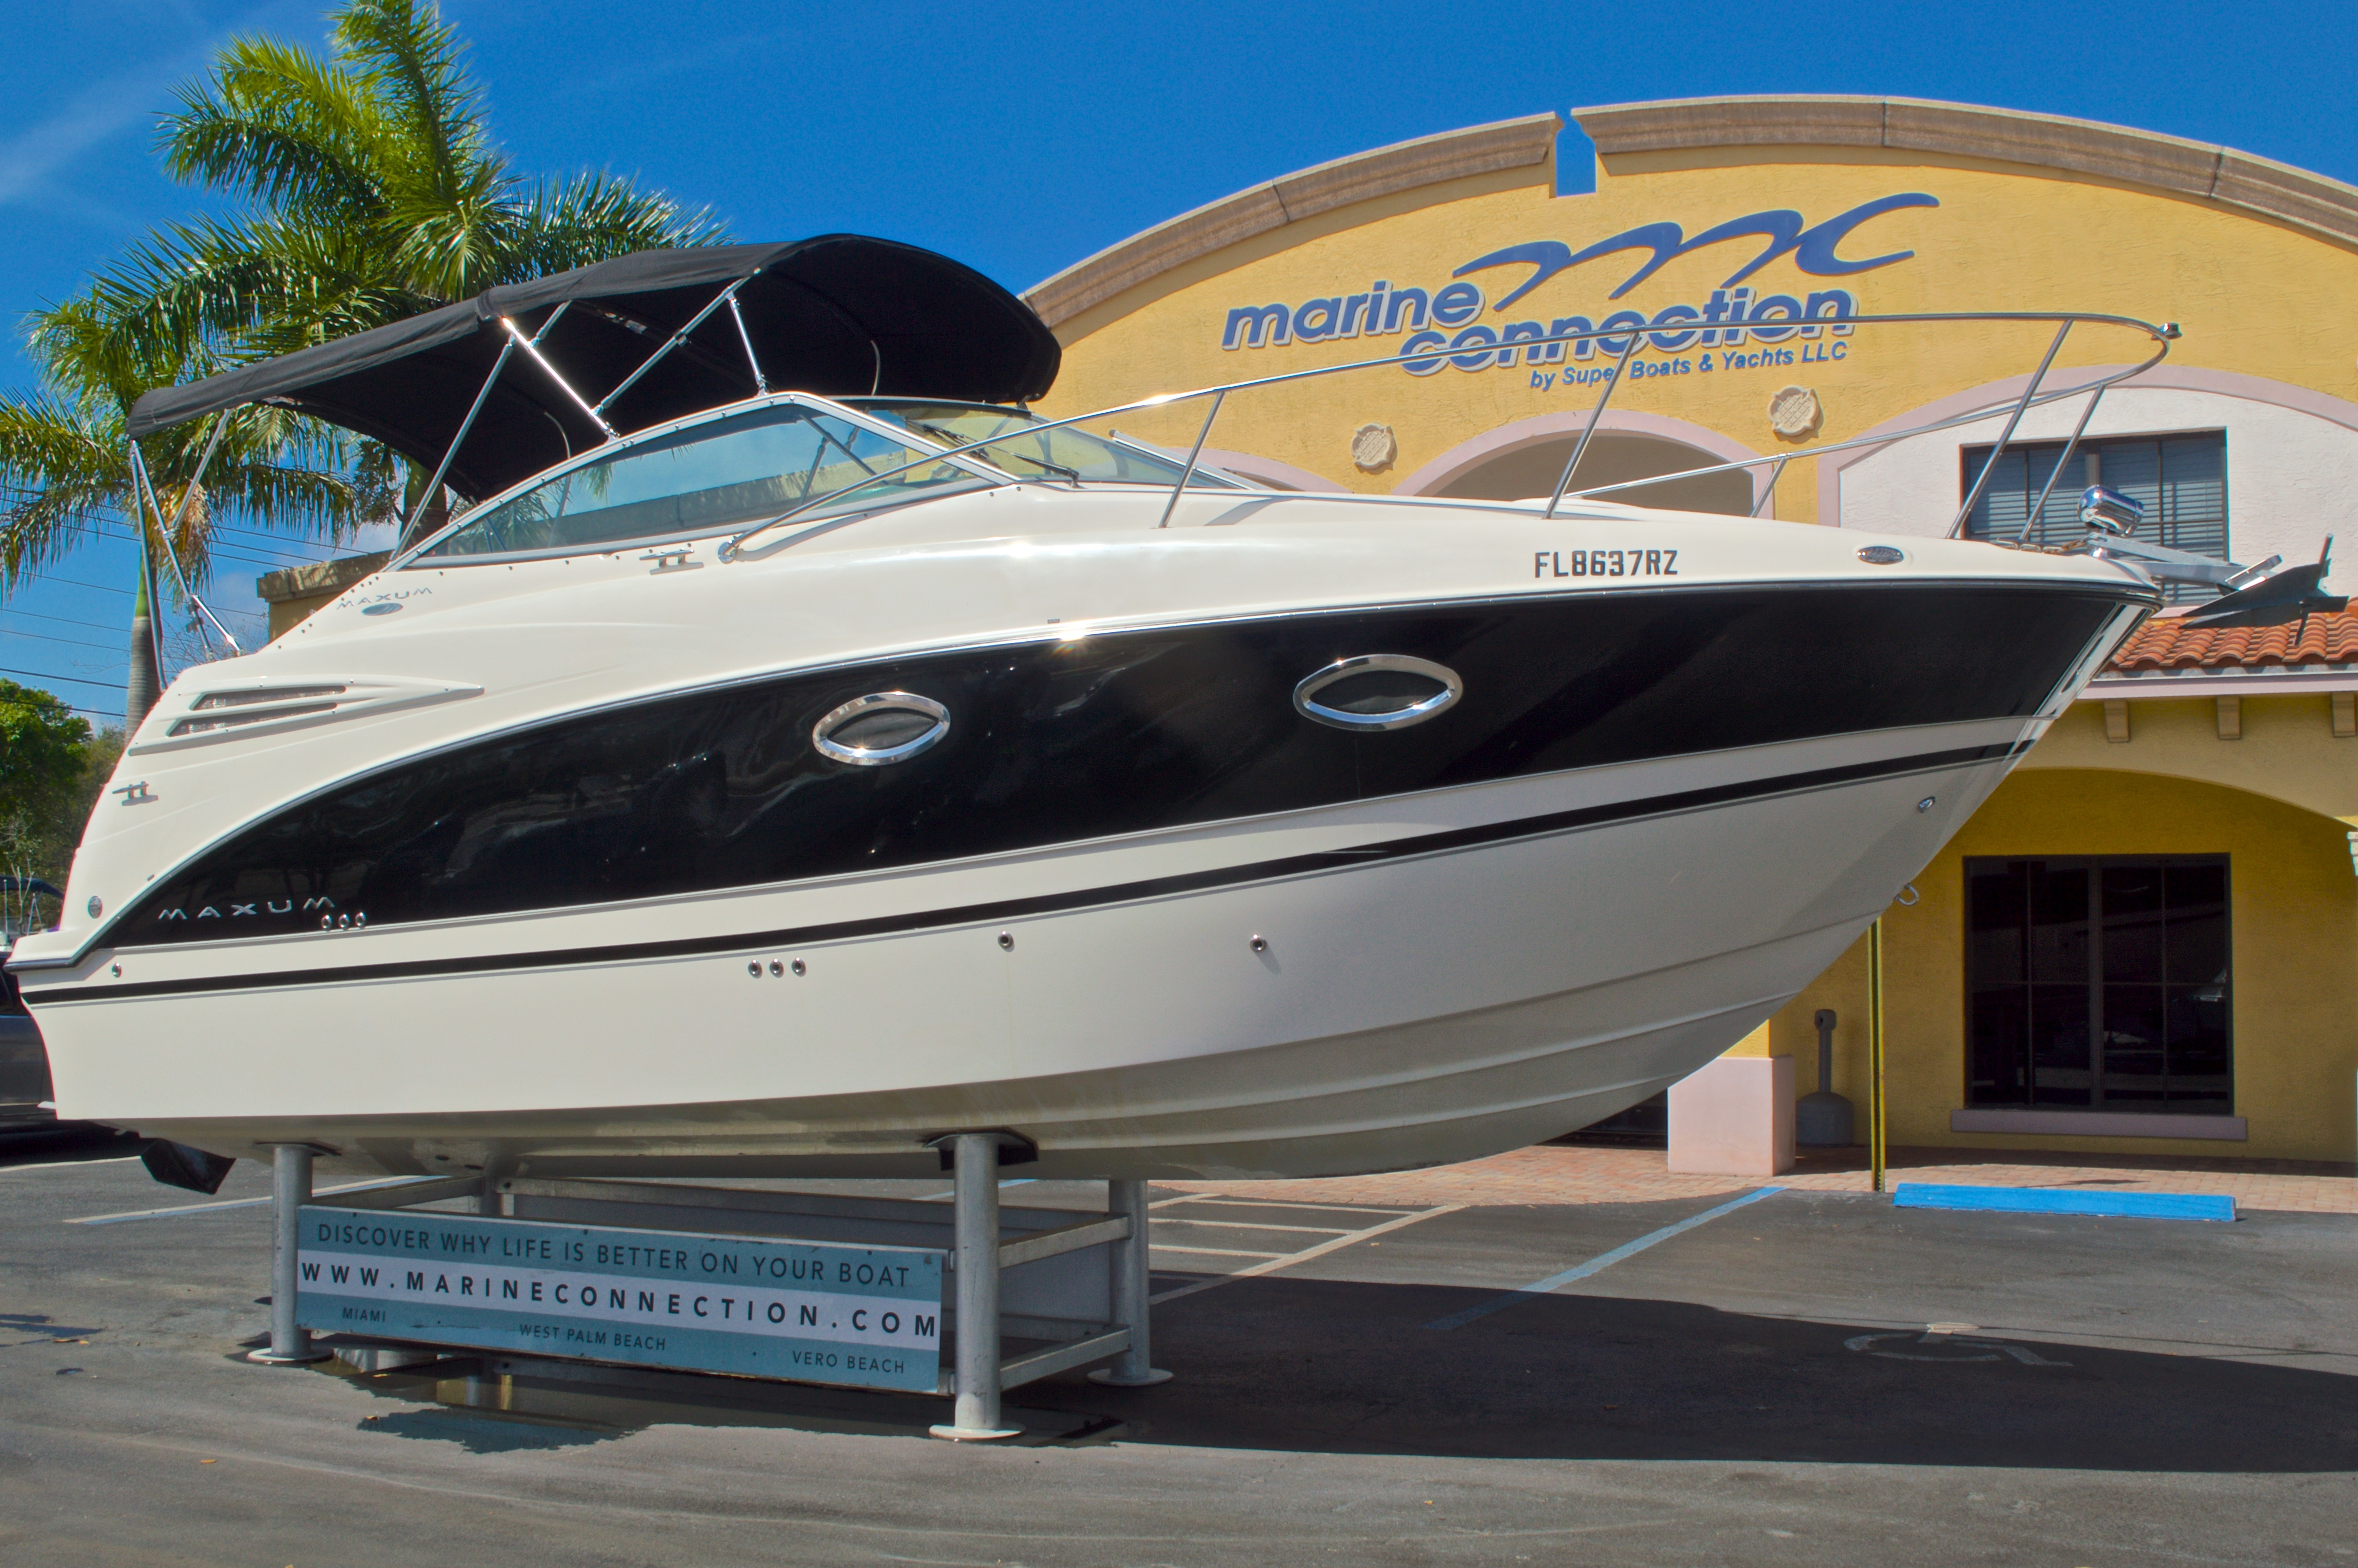 Thumbnail 1 for Used 2007 Maxum 2400 SE boat for sale in West Palm Beach, FL